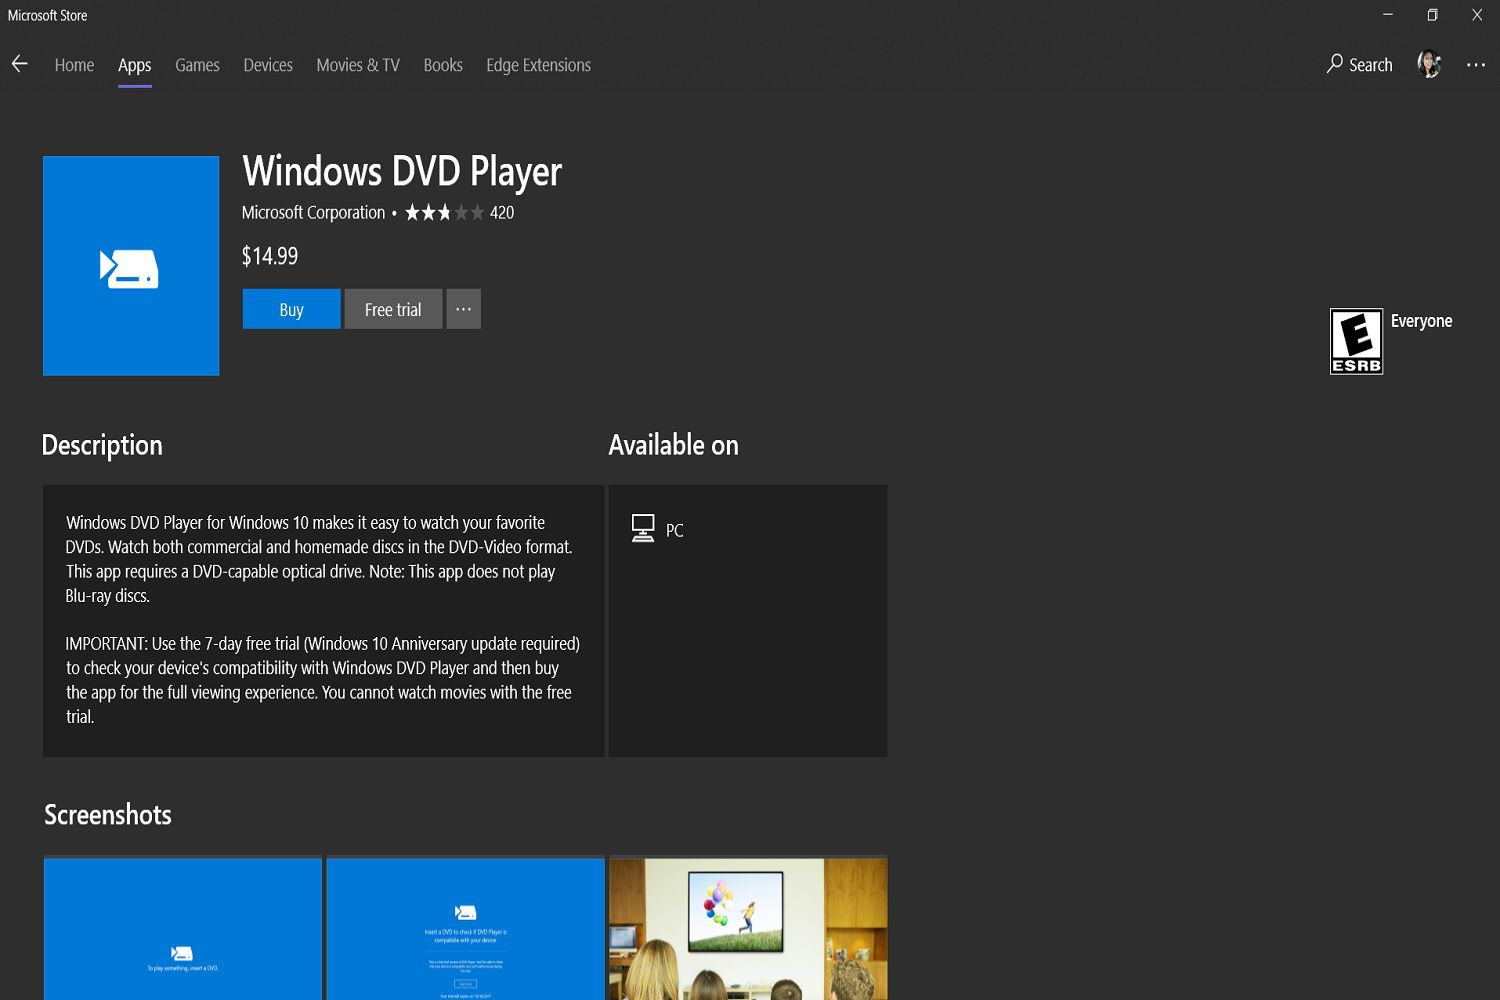 How to Watch a DVD on Windows 10